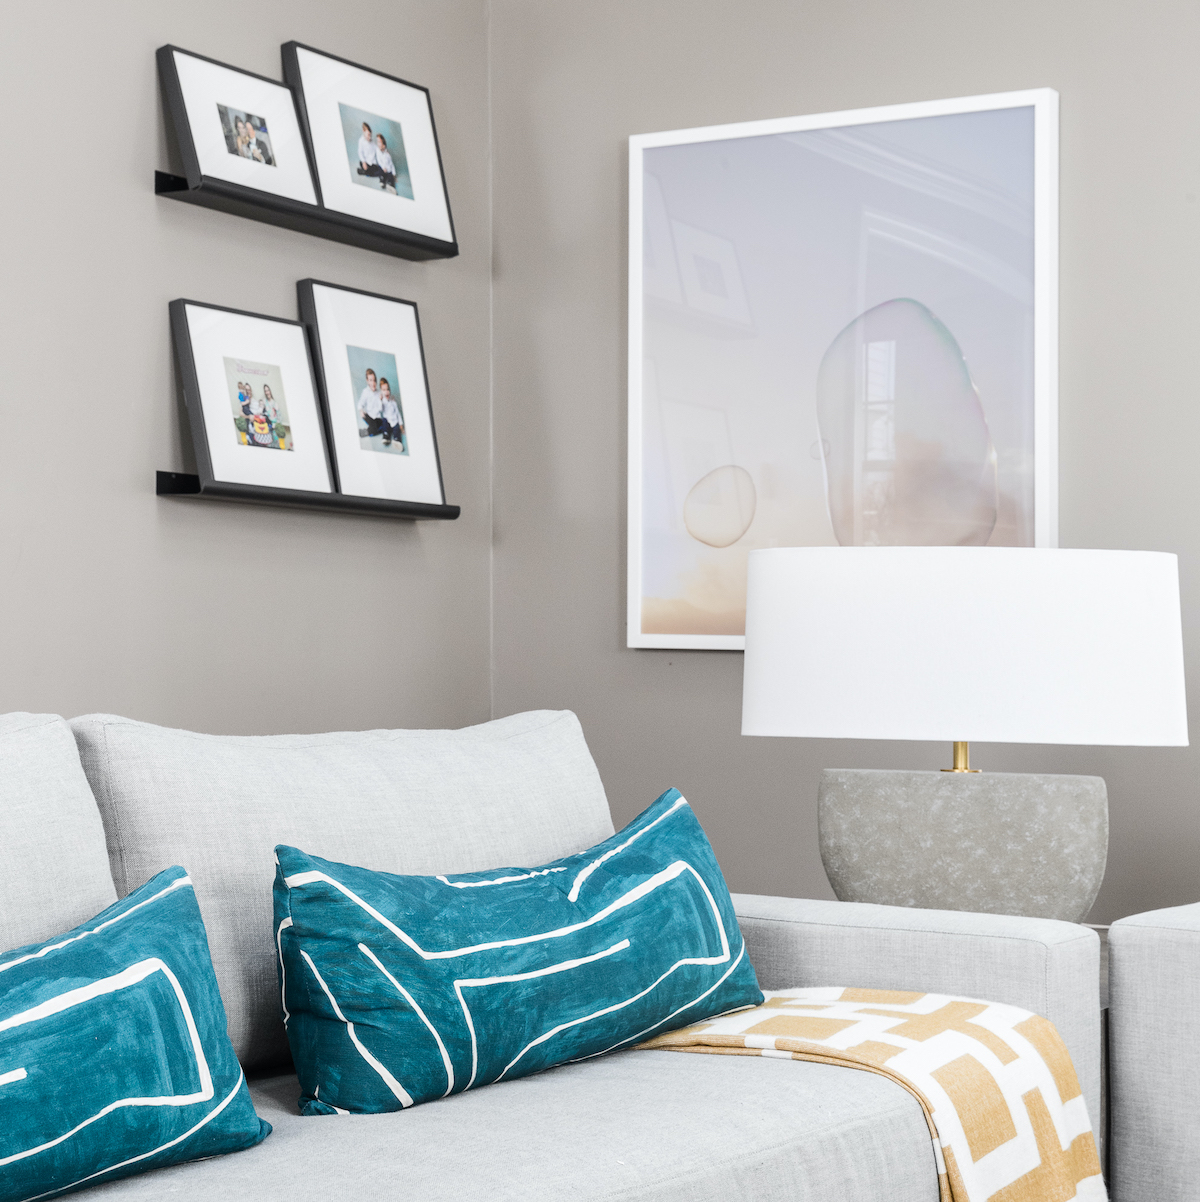 family-room-beige-gray-couch-blue-accent-pillows-yellow-white-blanket